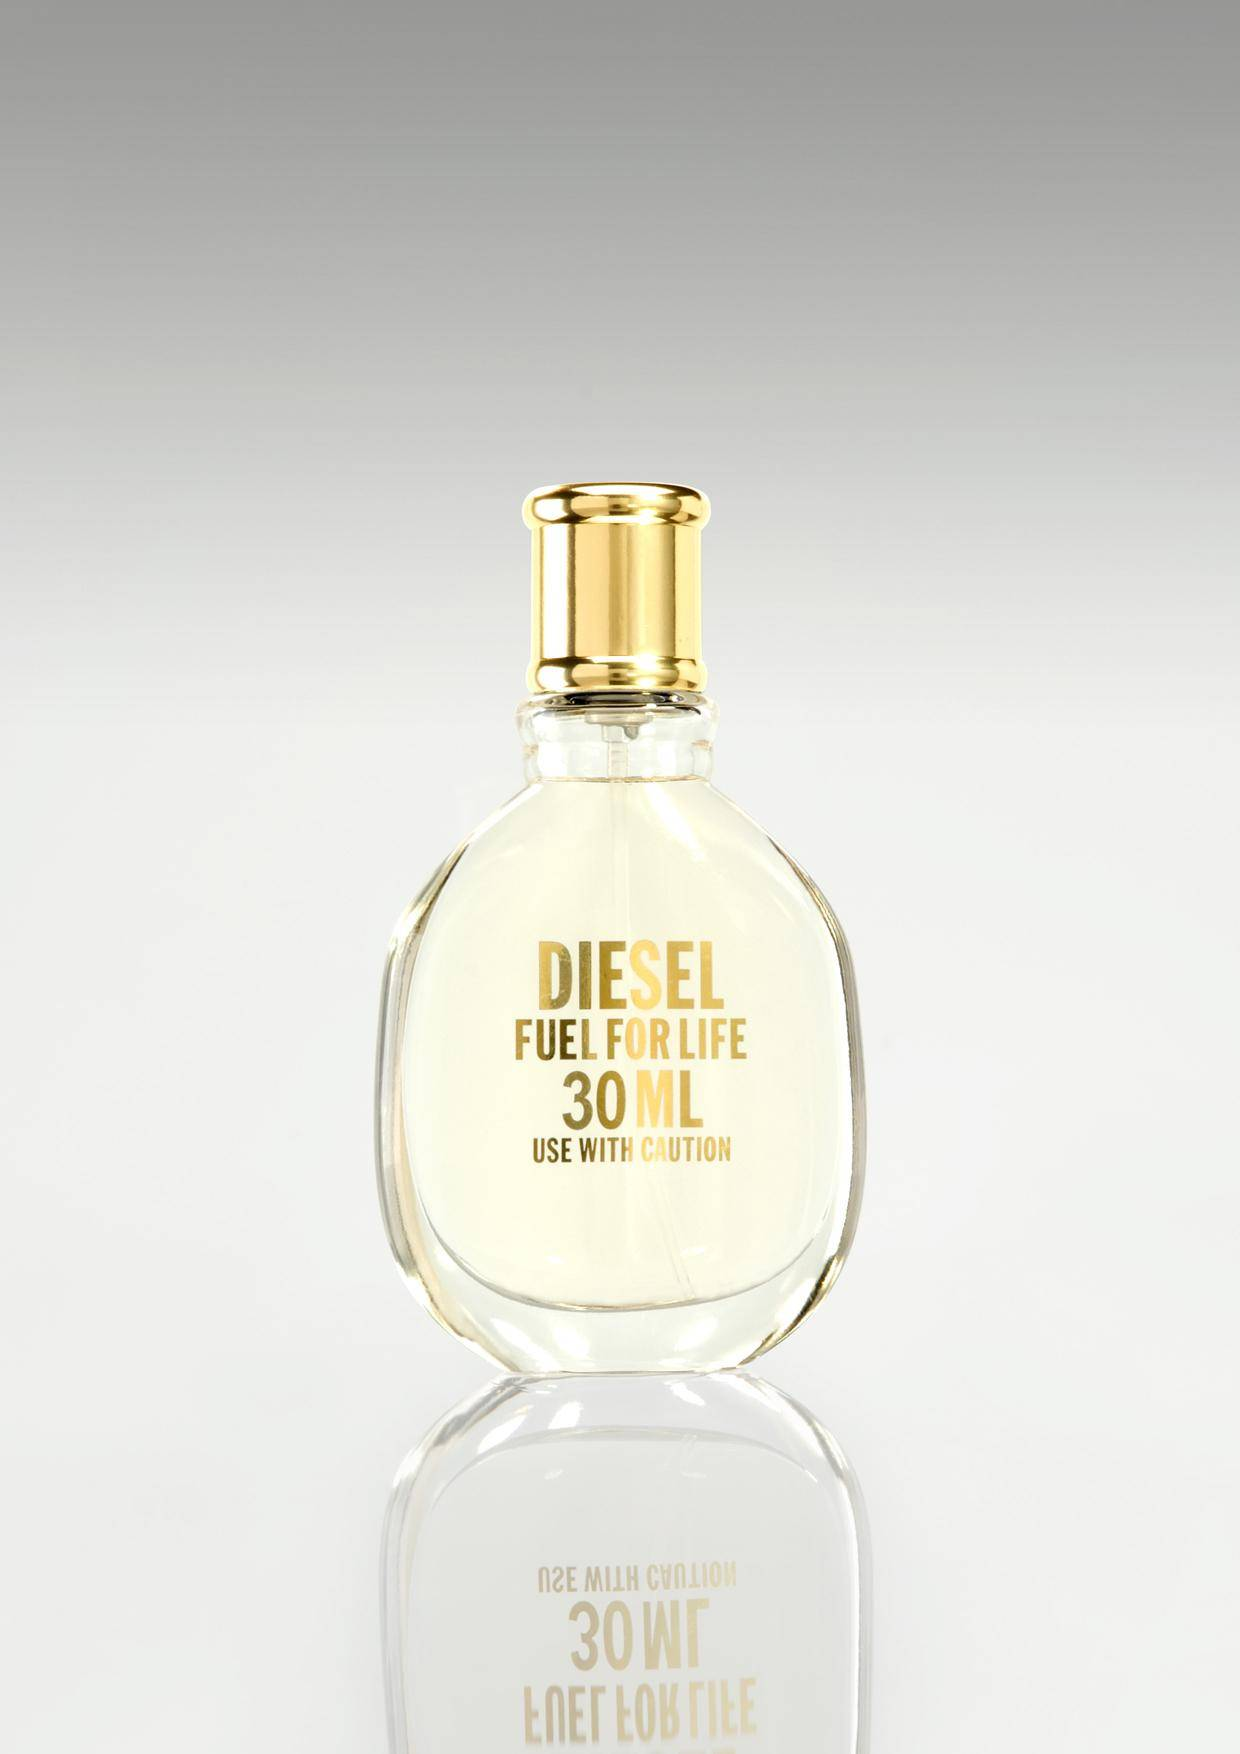 DIESEL Fuel For Life 30 ml Donna